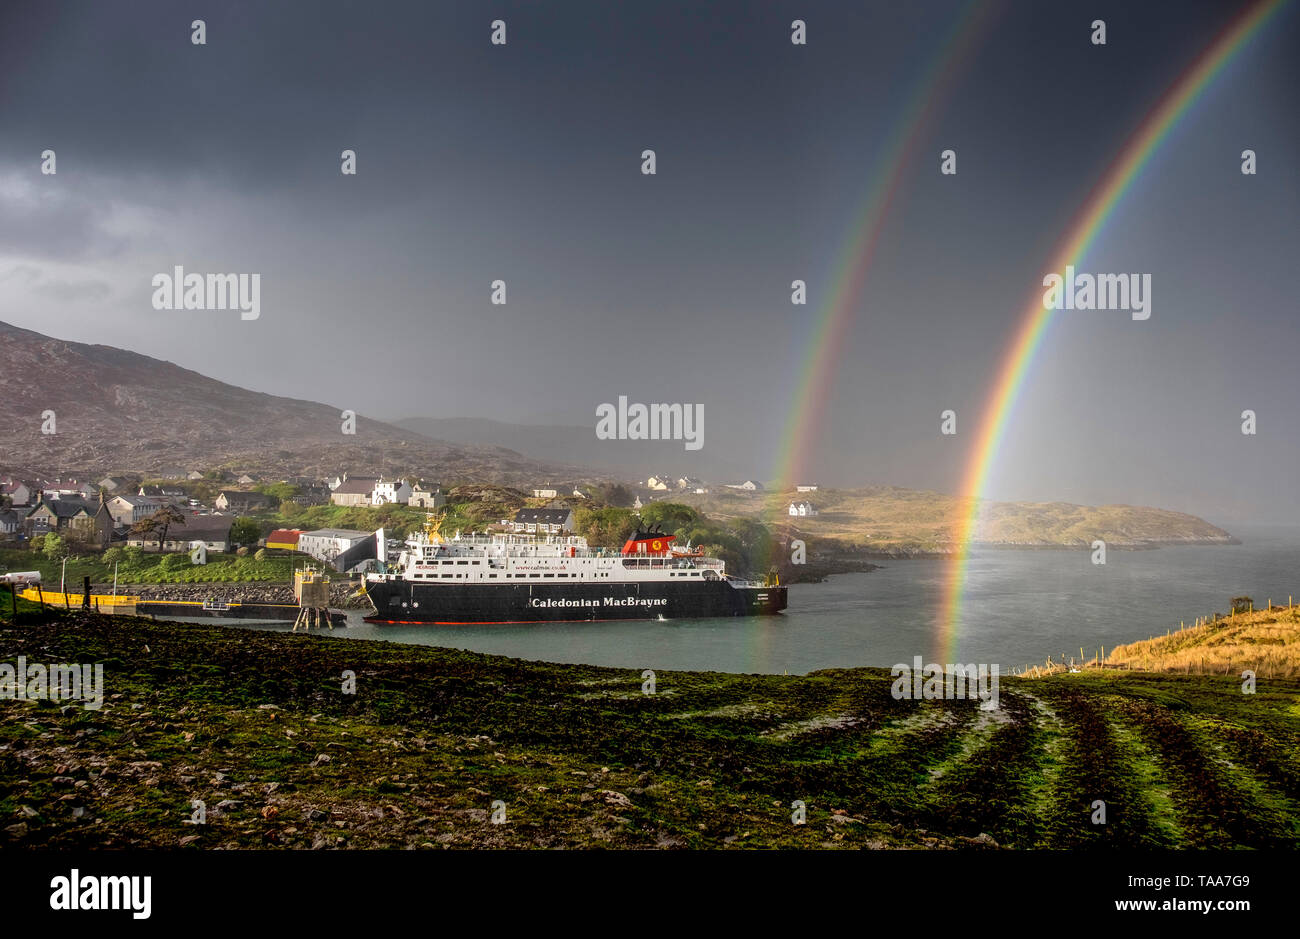 MV Hebrides docks at Tarbert, Harris, Outer Hebrides with rainbows - Stock Image